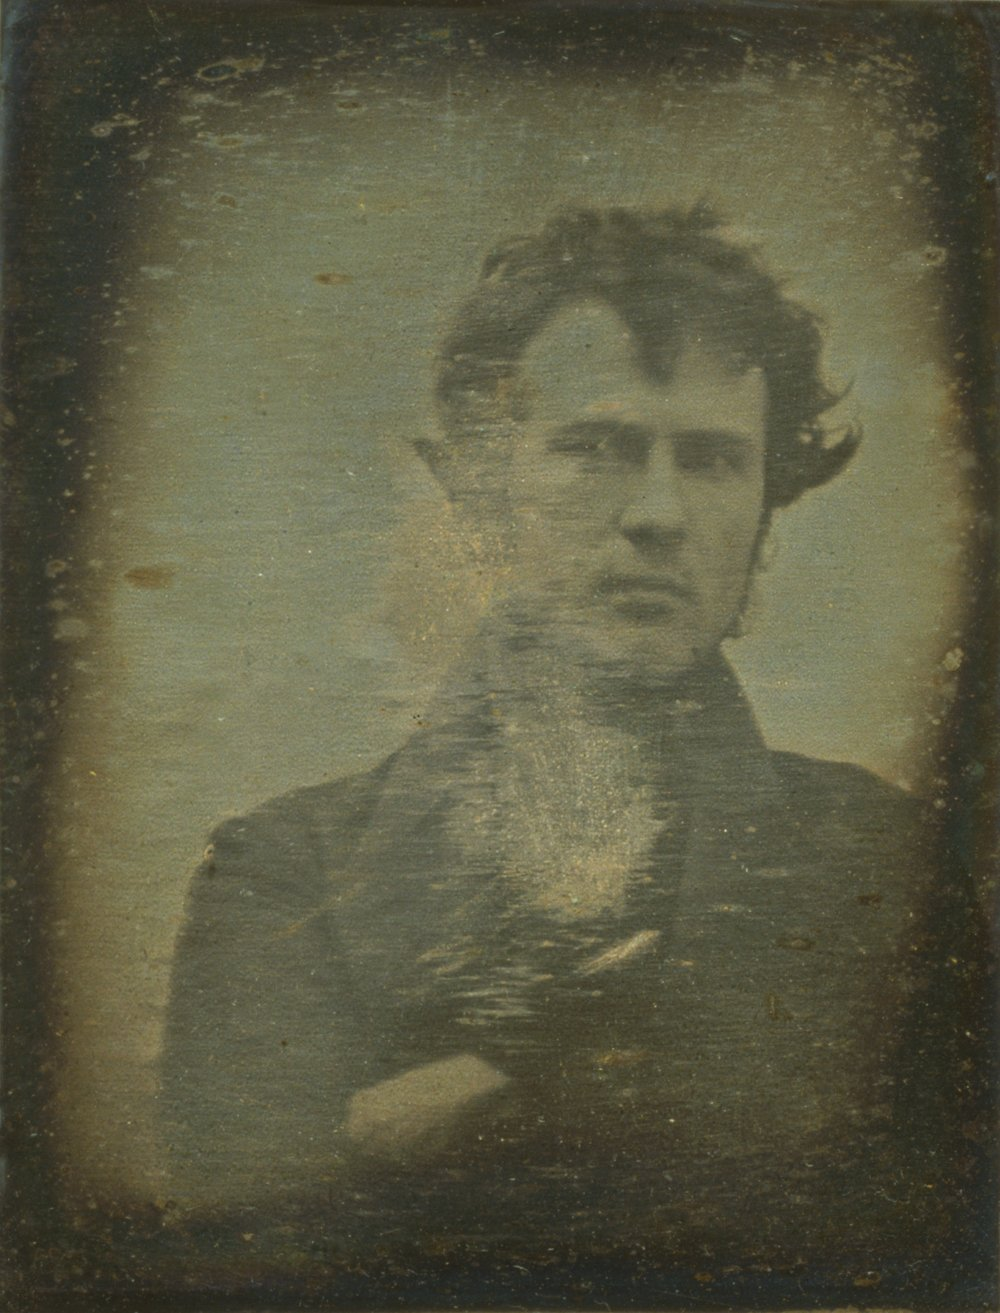 The first photographed self-portrait by Robert Cornelius in 1839